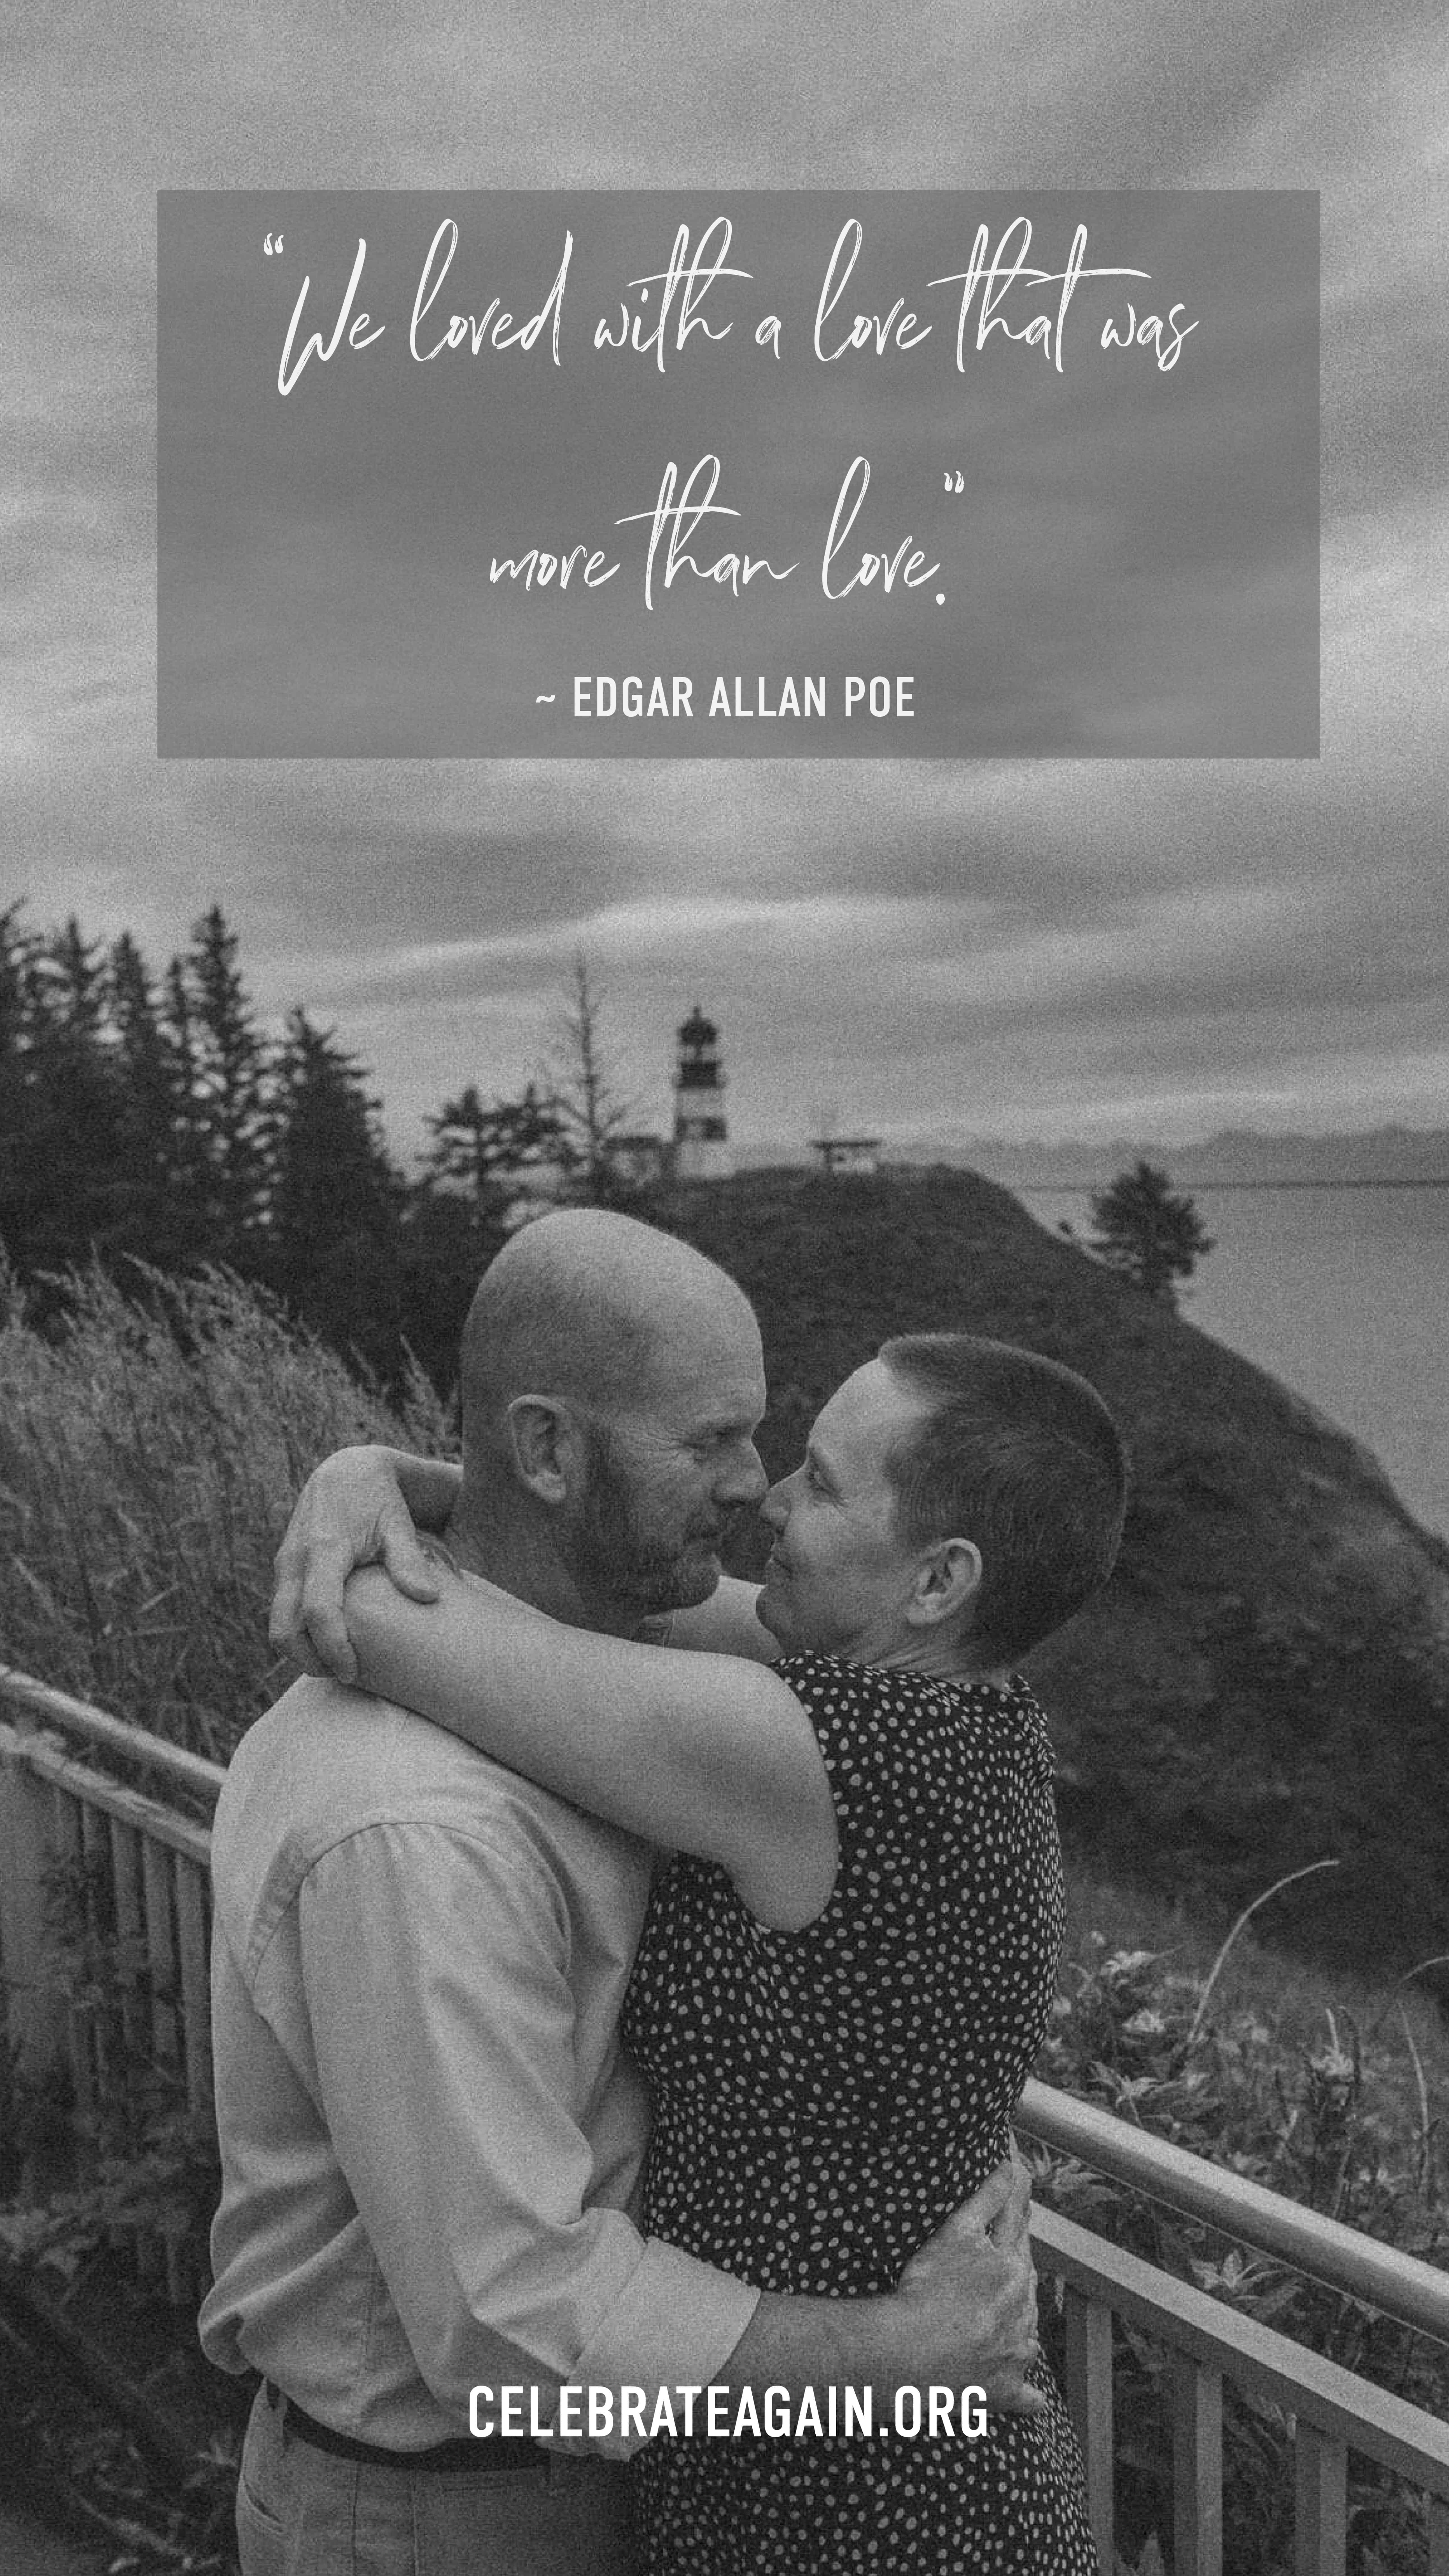 """romantic love quotes for her """"We loved with a love that was more than love."""" - Annabel Lee by Edgar Allan Poe couple hugging while standing near a lighthouse image by celebrateagain"""